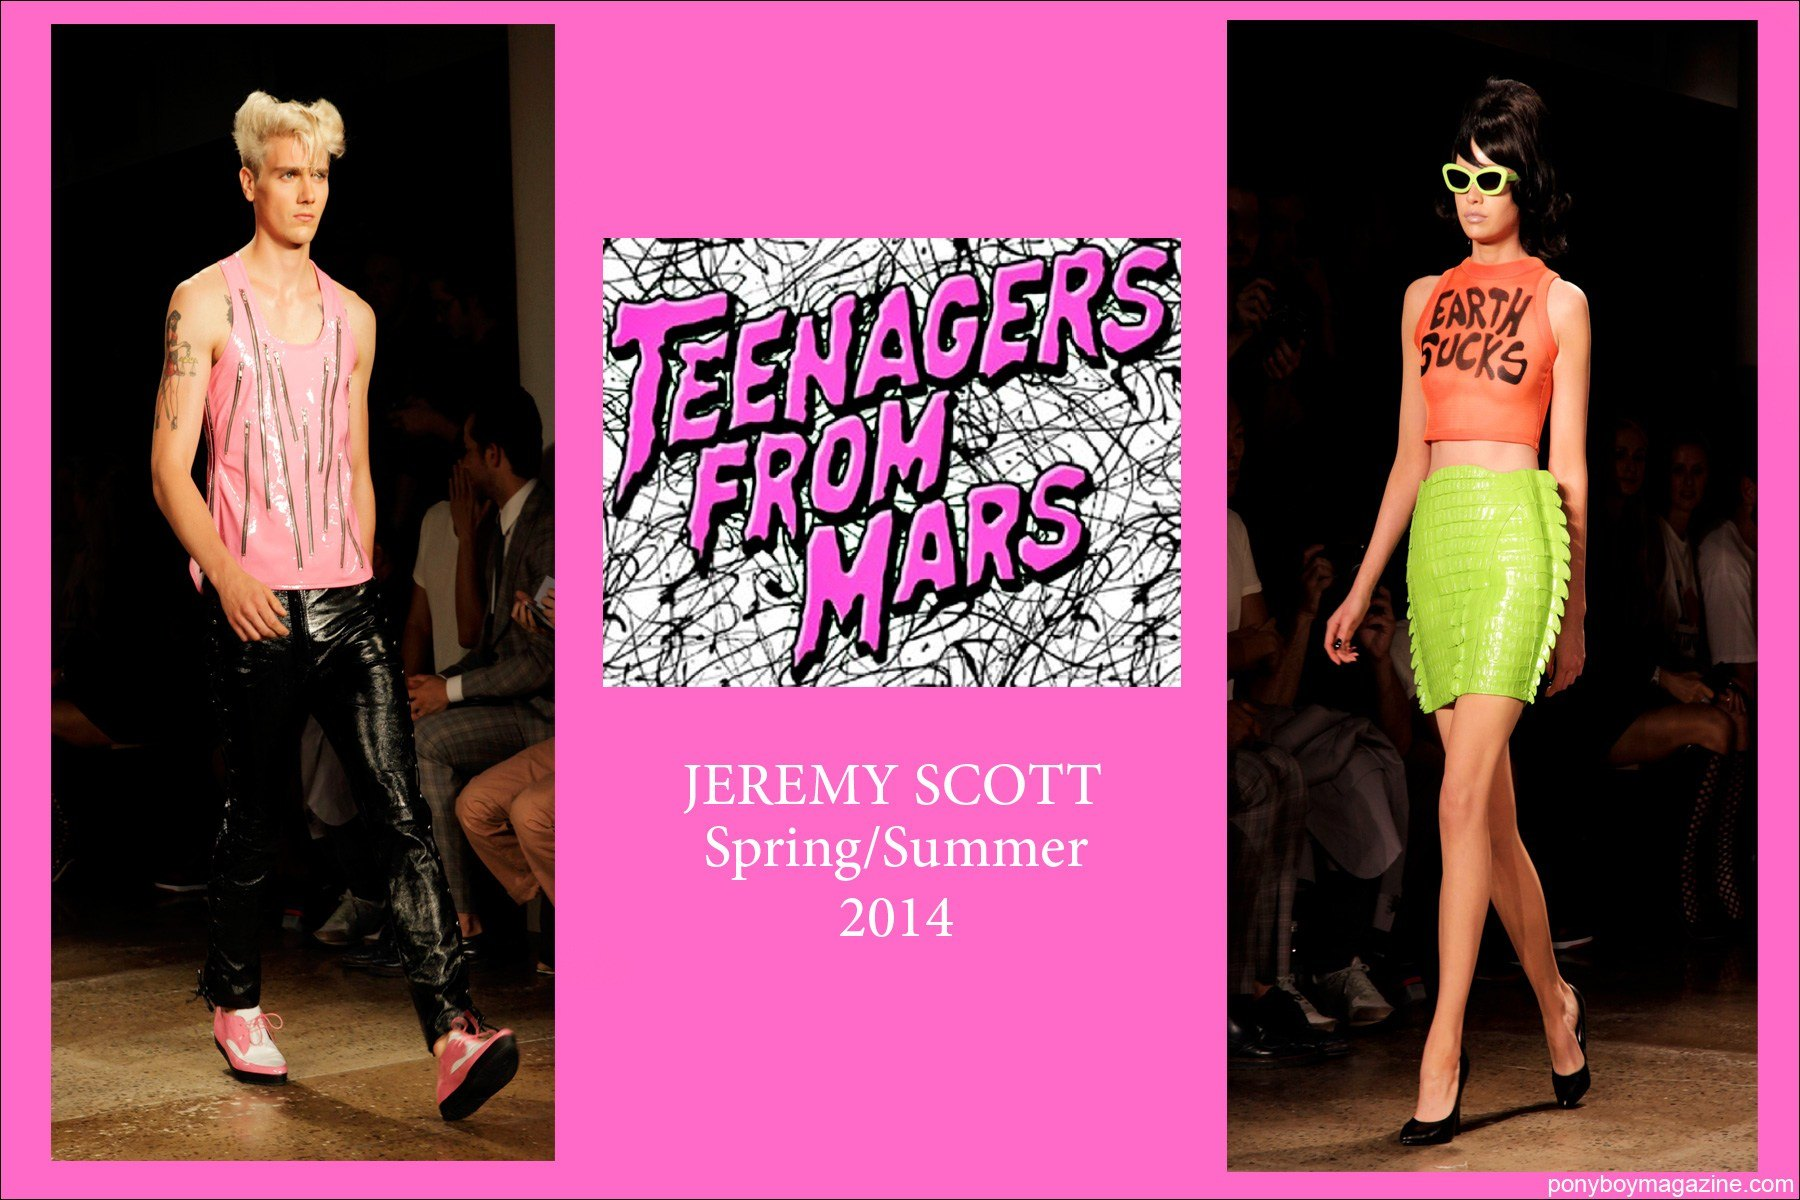 Teenagers from Mars SS2014 Jeremy Scott collection, photographed by Alexander Thompson for Ponyboy Magazine.